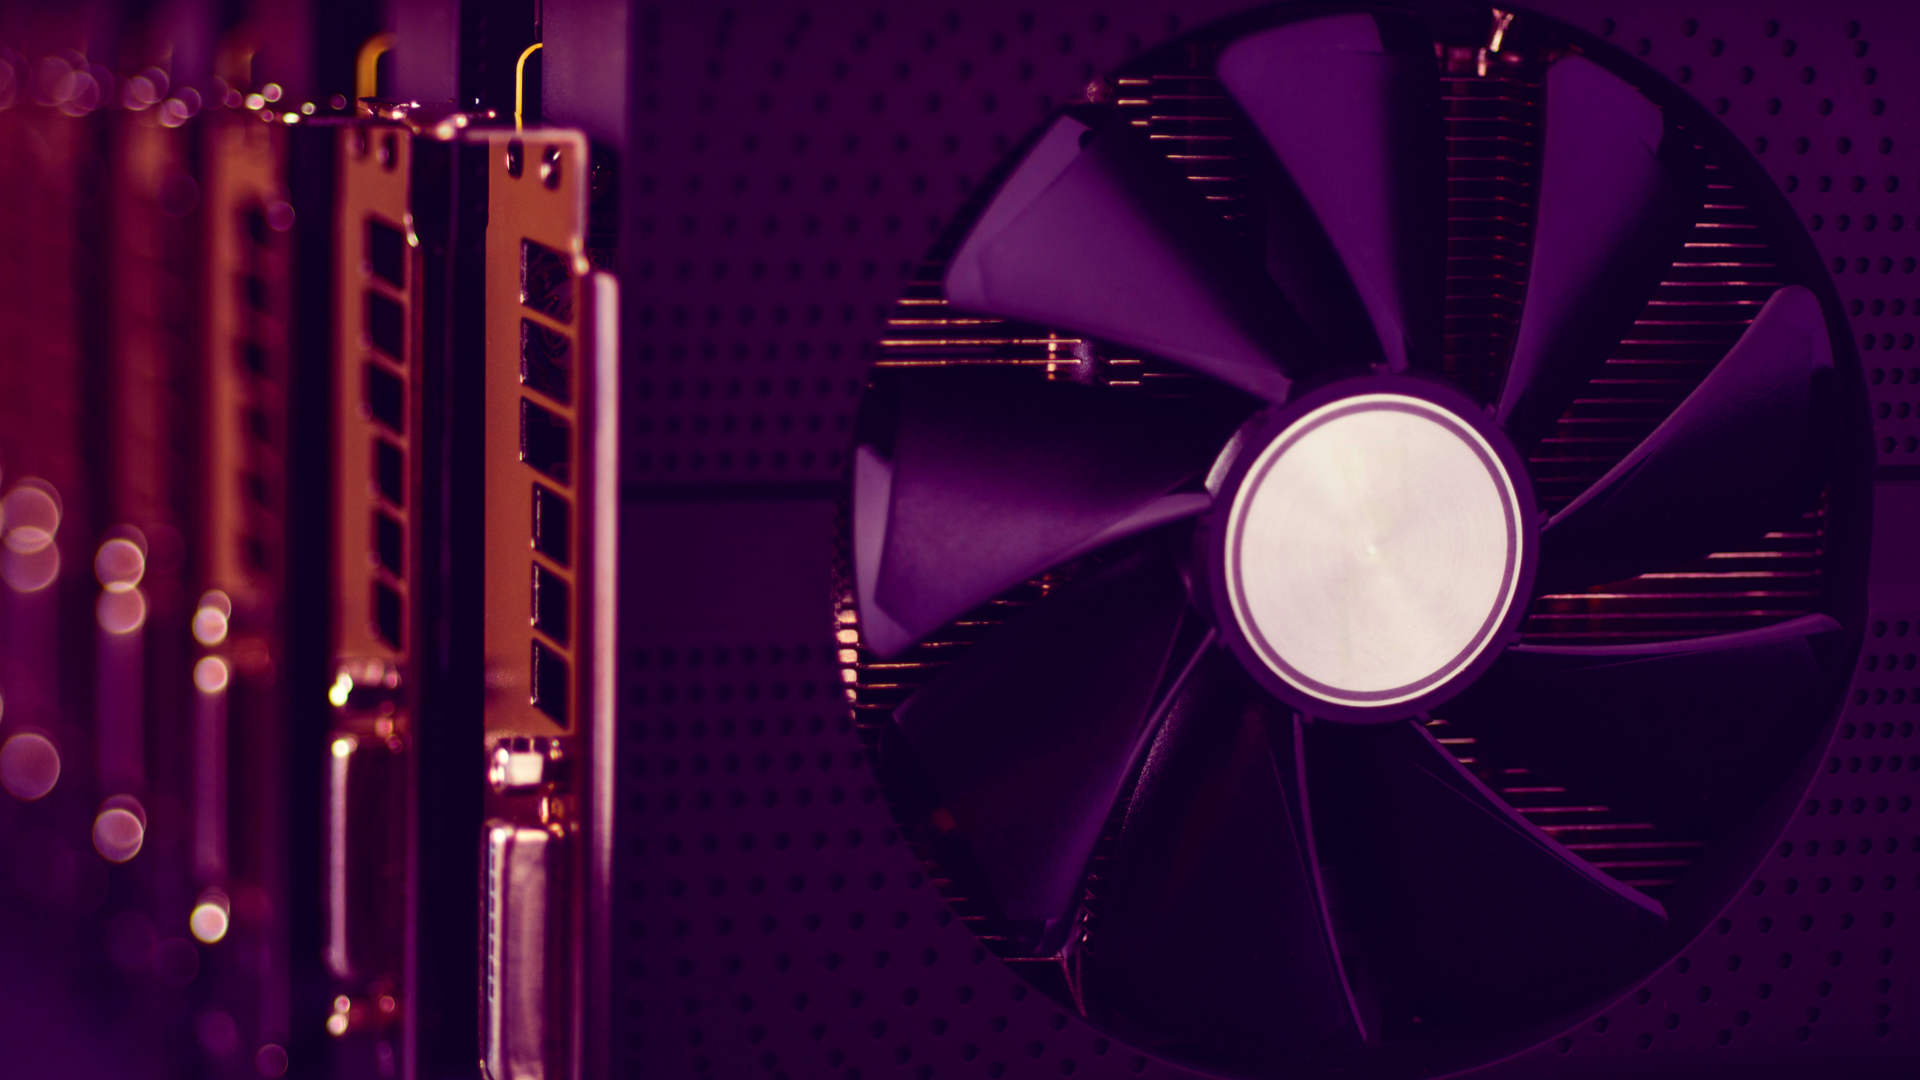 intel-arc-gpus-could-finally-give-amd-and-nvidia-something-to-worry-about